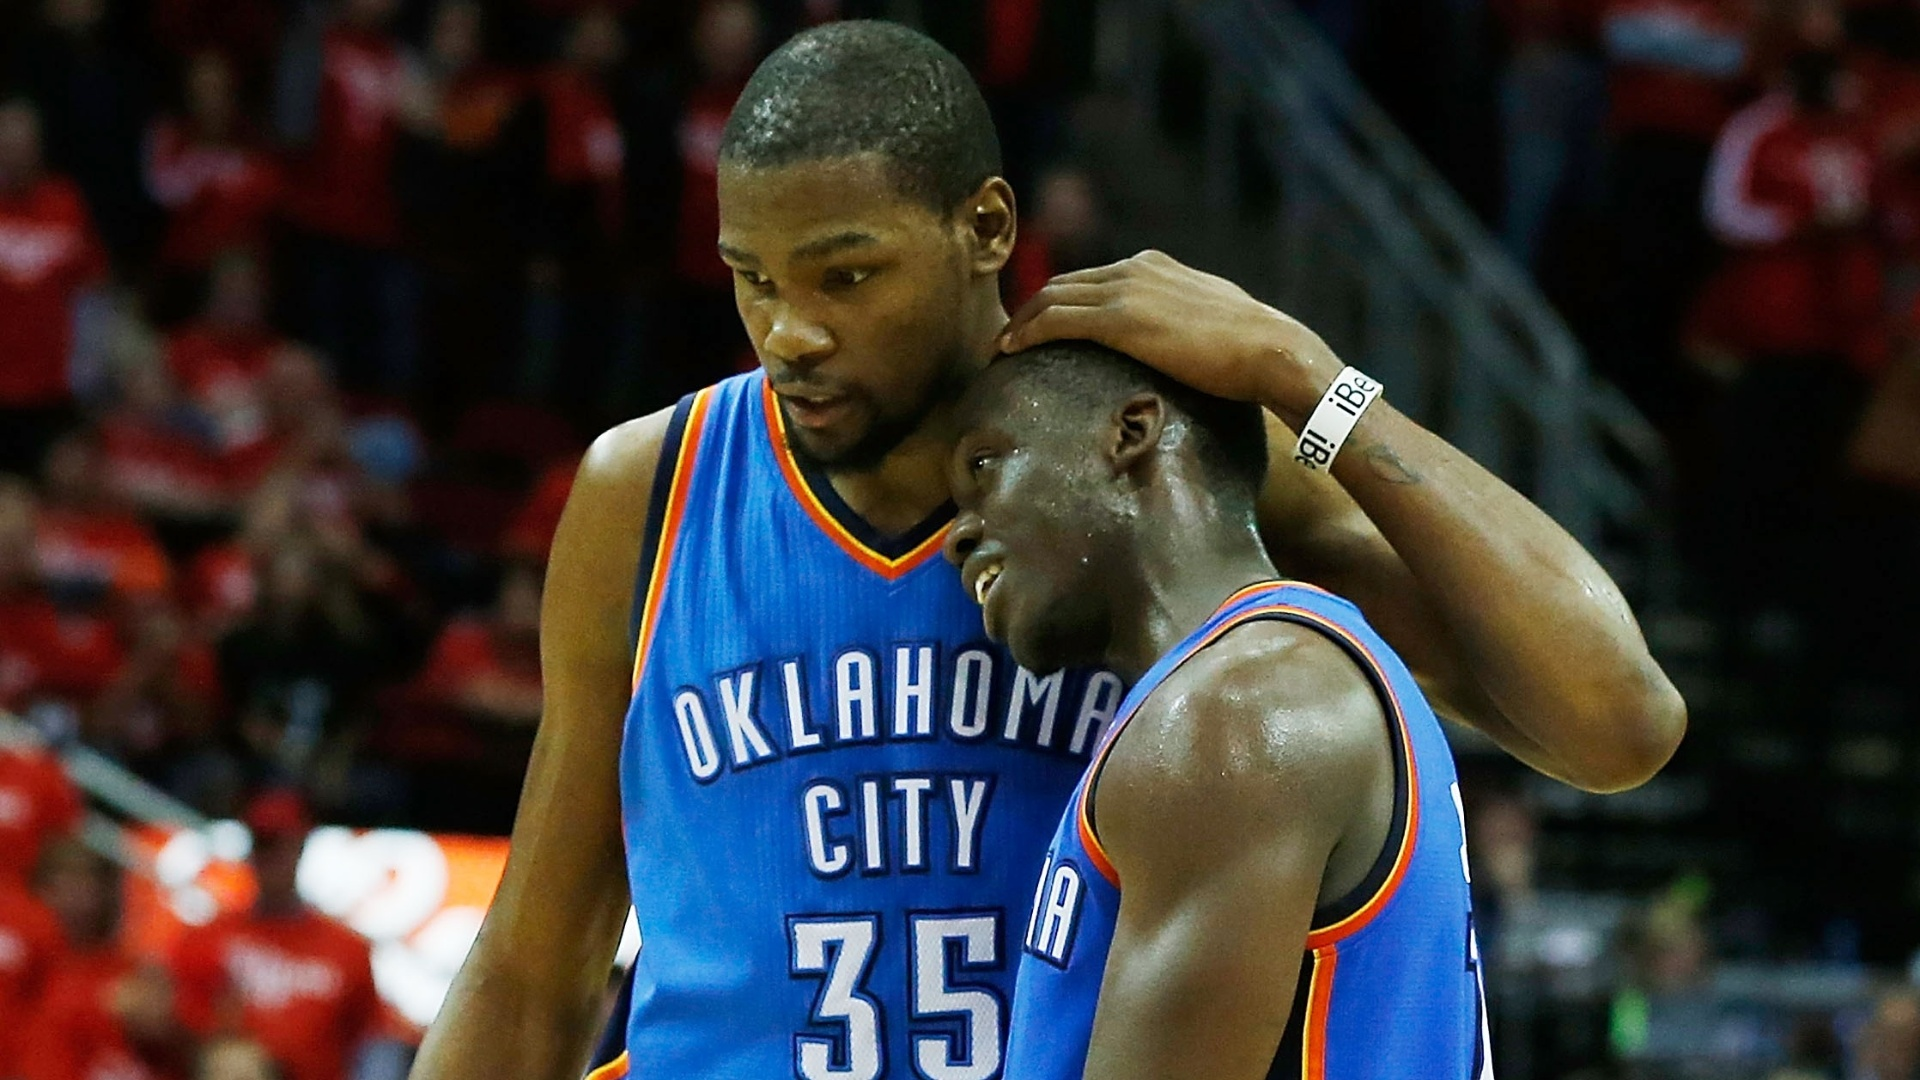 Kevin Durant (e) e Reggie Jackson comemoram classificação do Thunder para as semifinais dos playoffs da NBA